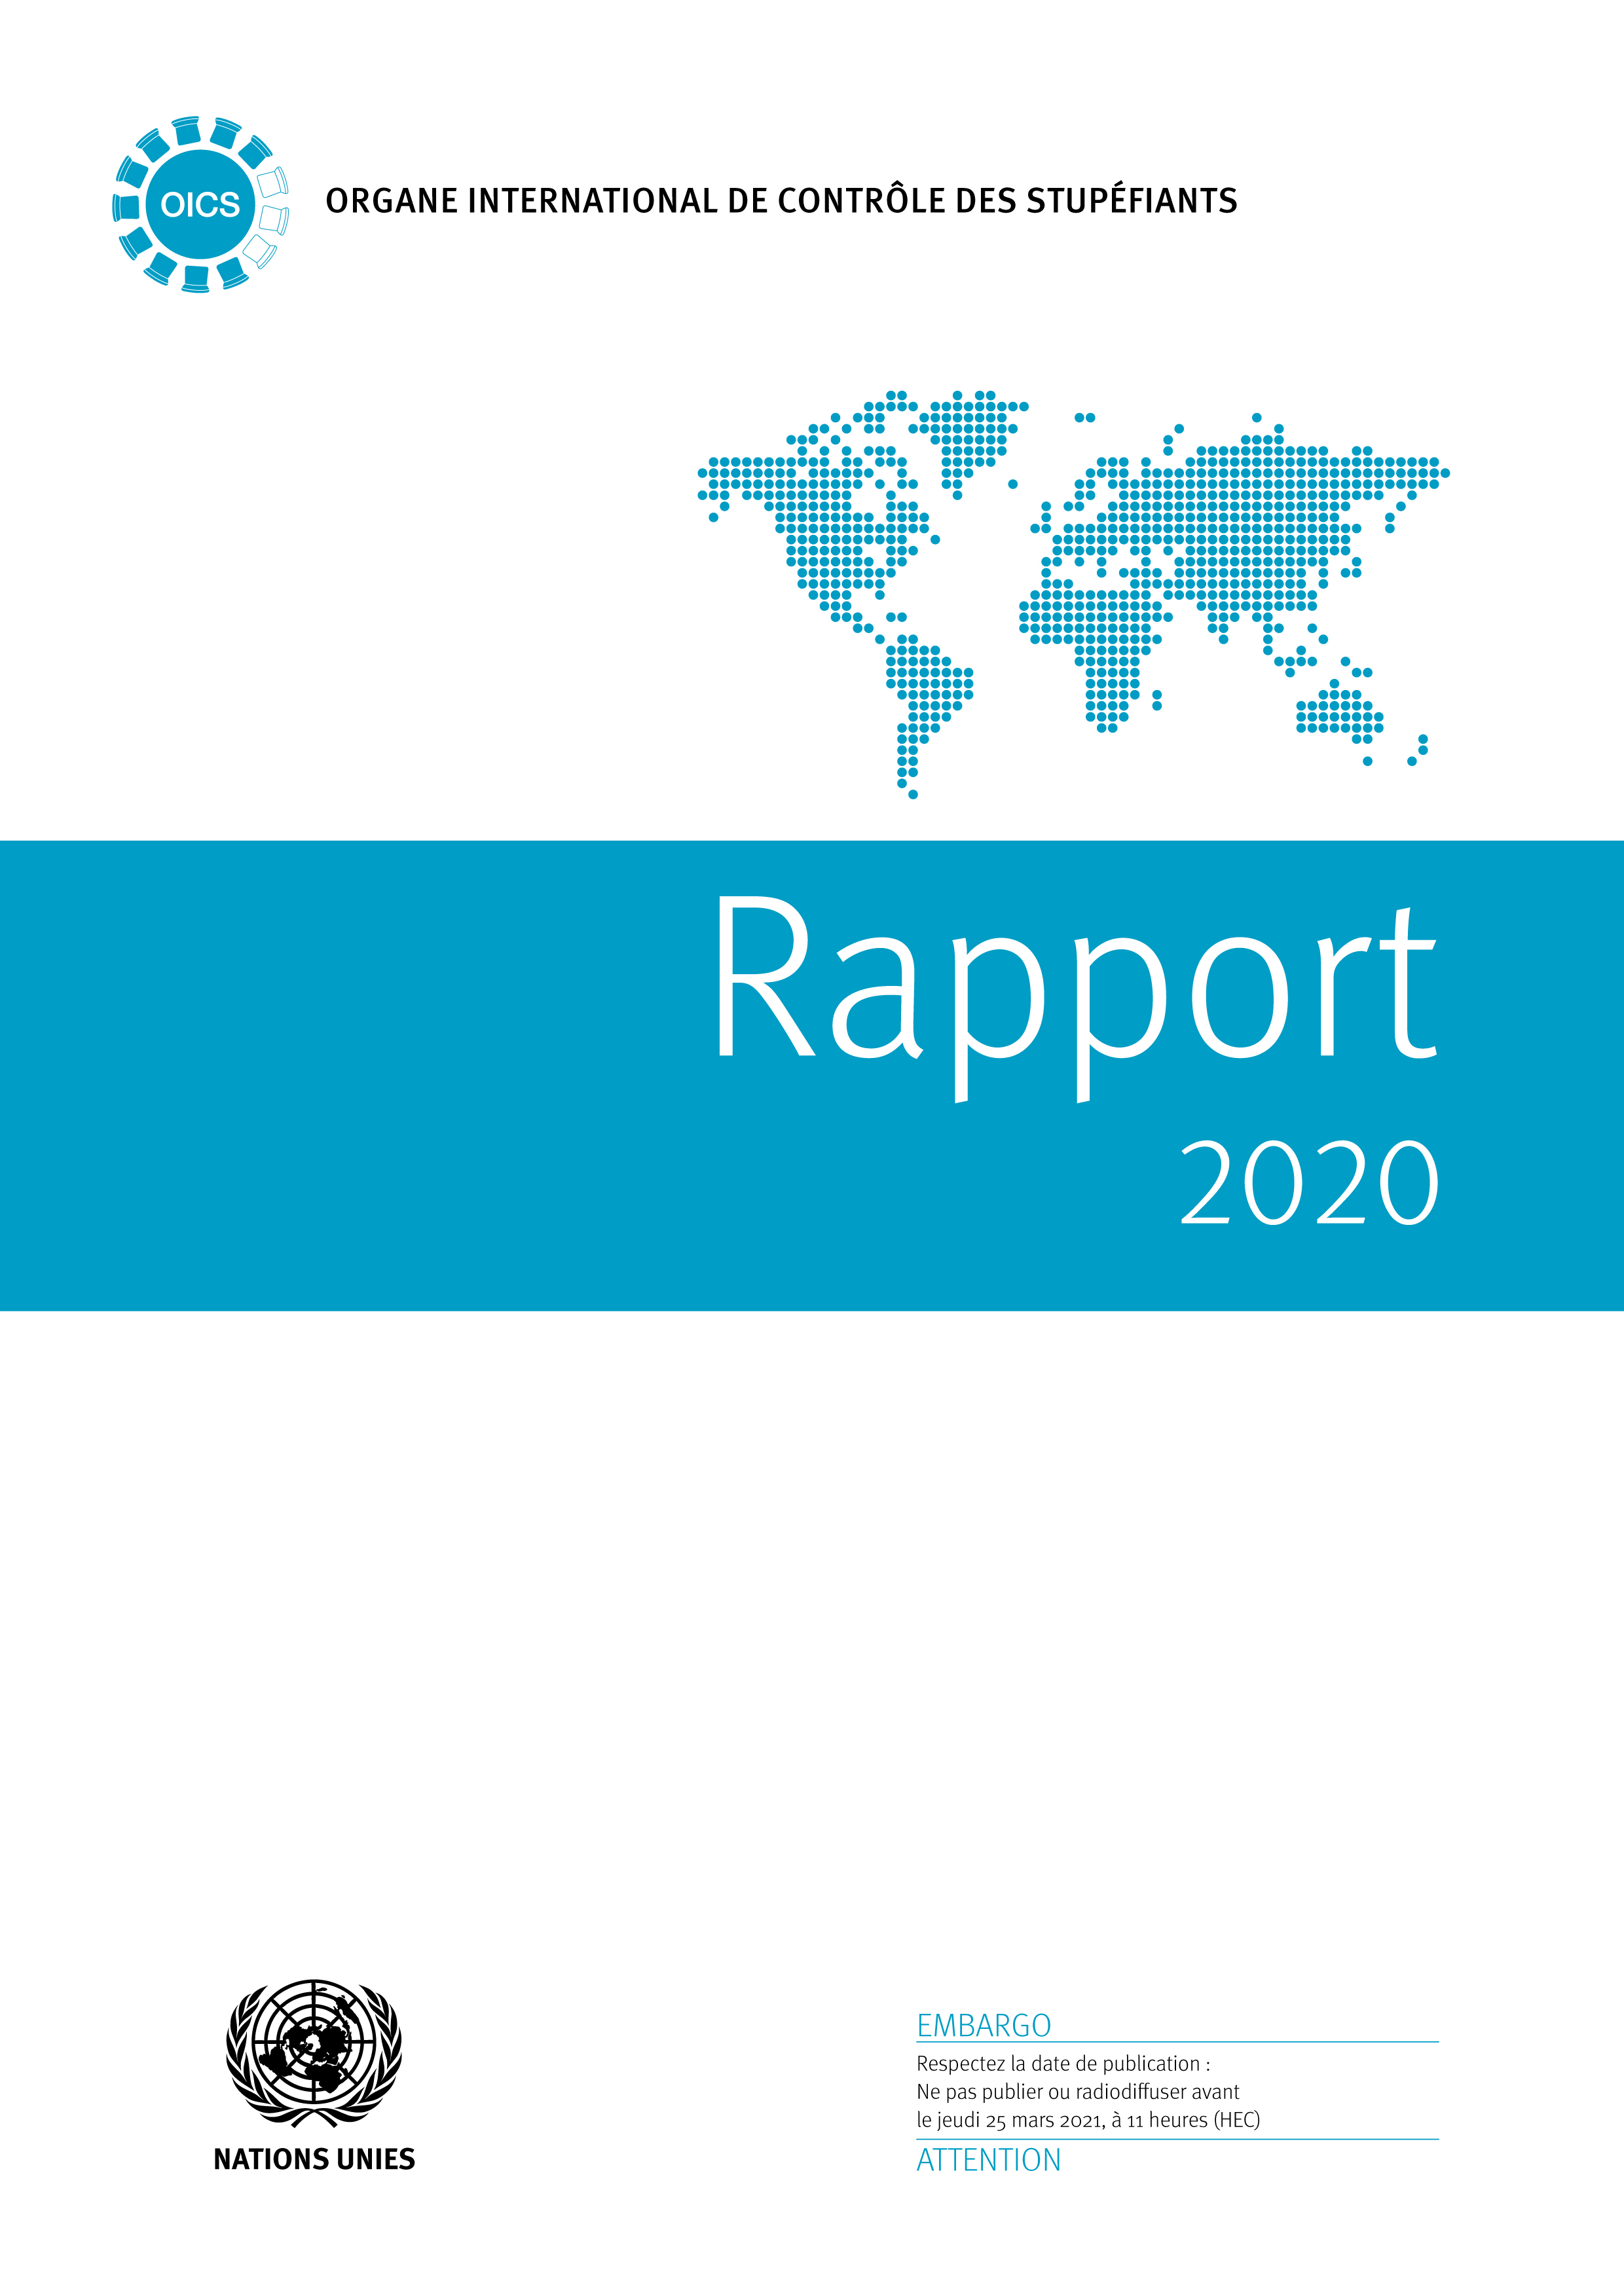 RAPPORT ORGANE INTL CONTROLE 2020